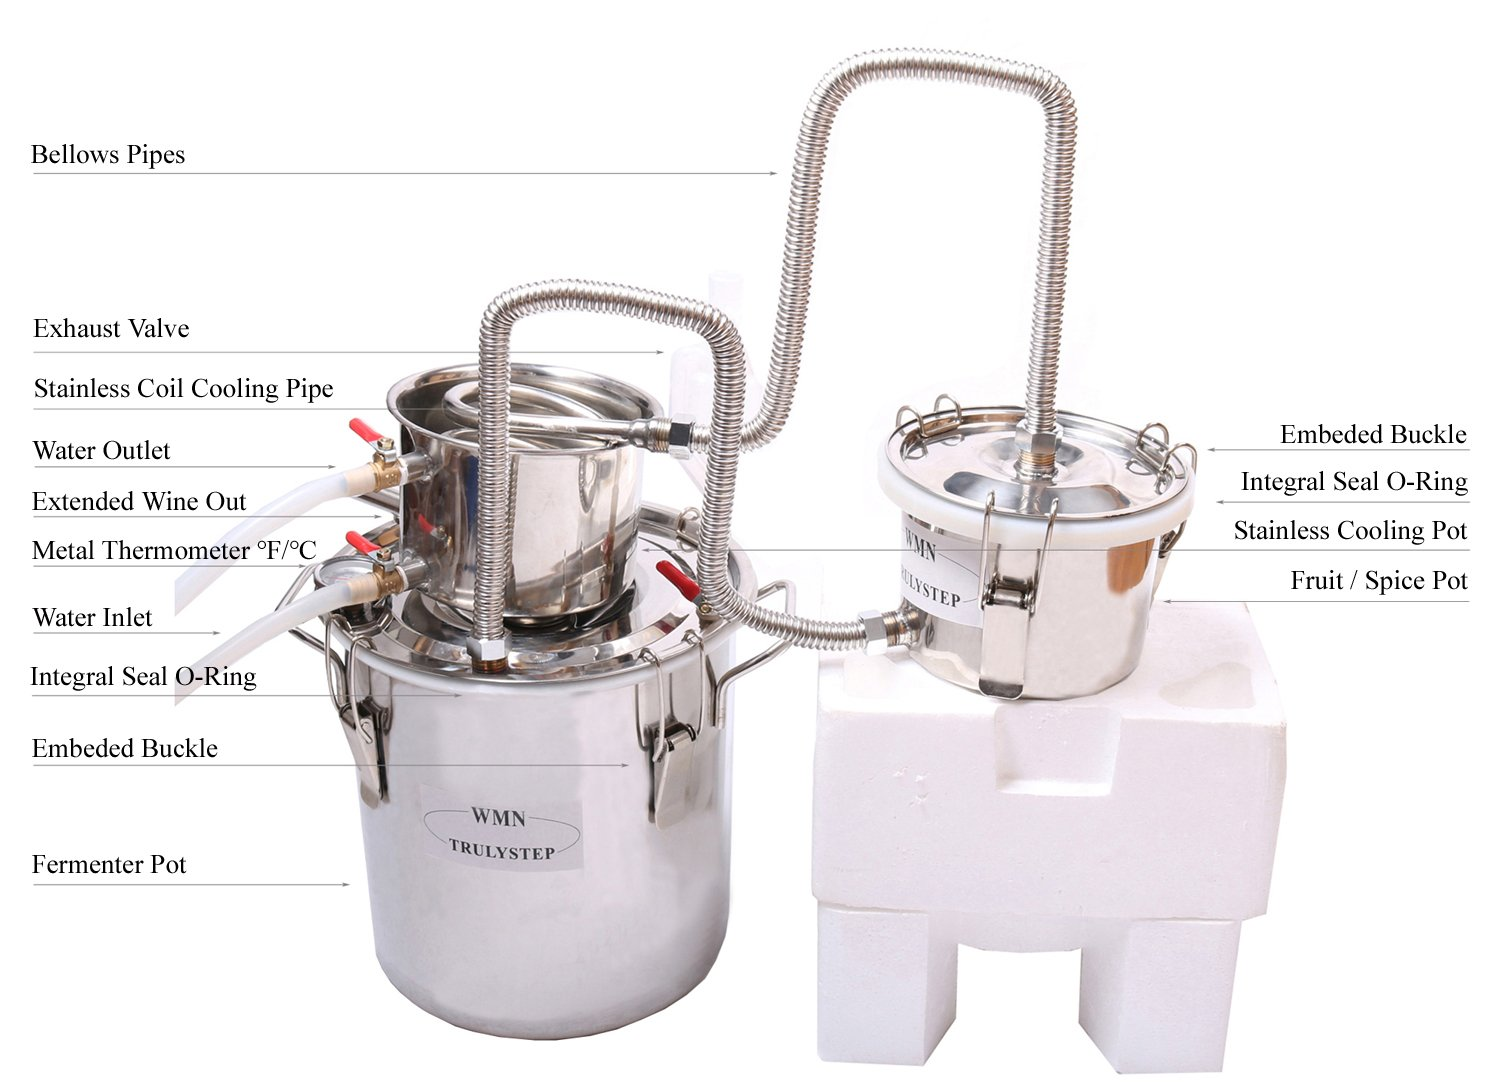 New 3 Pots DIY 3 Gal 12 Litres Alcohol Moonshine Ethanol Still Spirits Stainless Steel Boiler Water Distiller Whiskey Wine Making Kit by WMN_TRULYSTEP (Image #2)